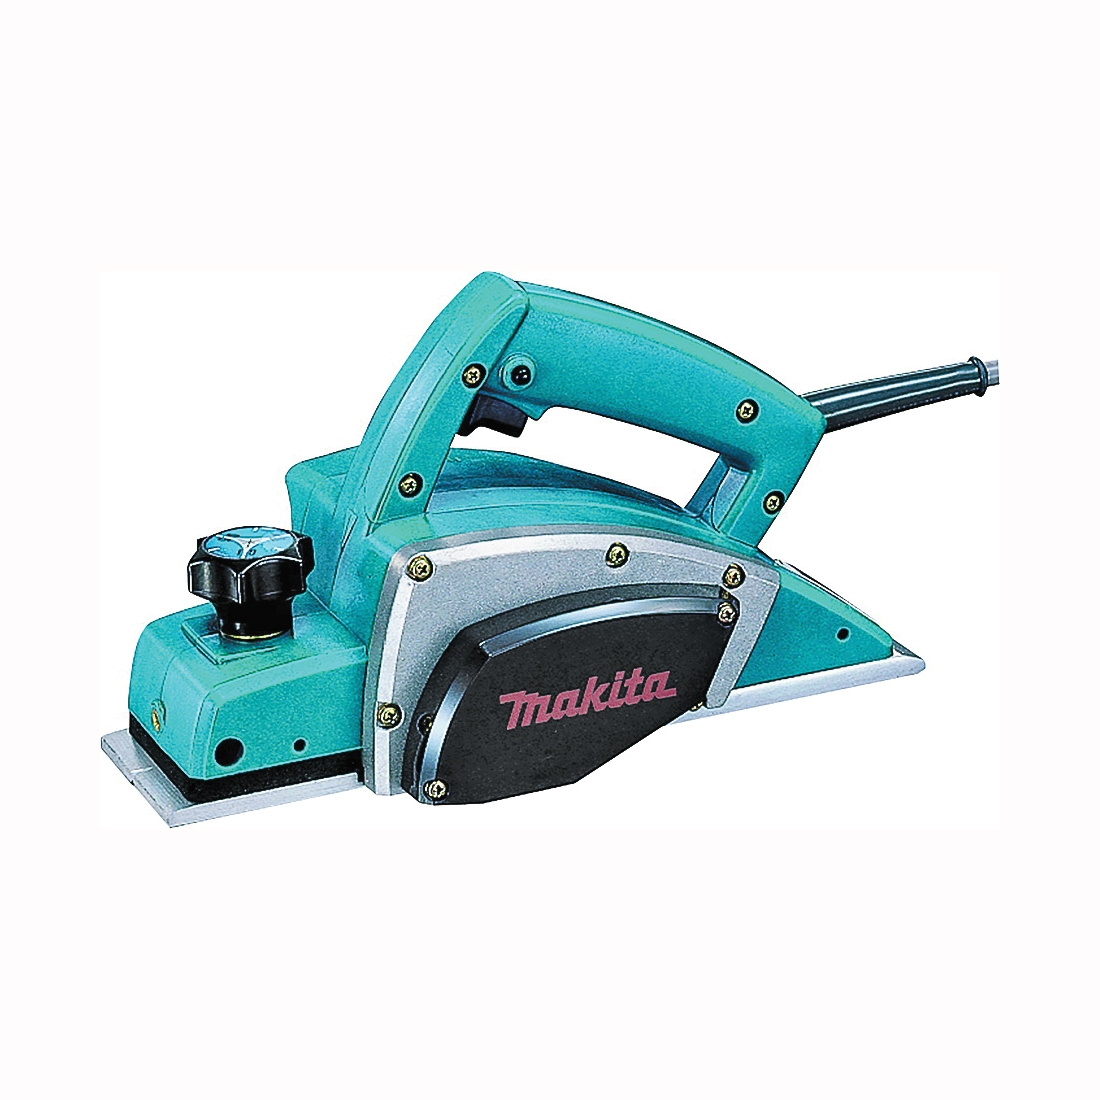 Picture of Makita KP0800K Planer Kit with Tool Case, 120 V, 6.5 A, 3-1/4 in W Planning, 3/32 in D Planning, 17,000 rpm No Load